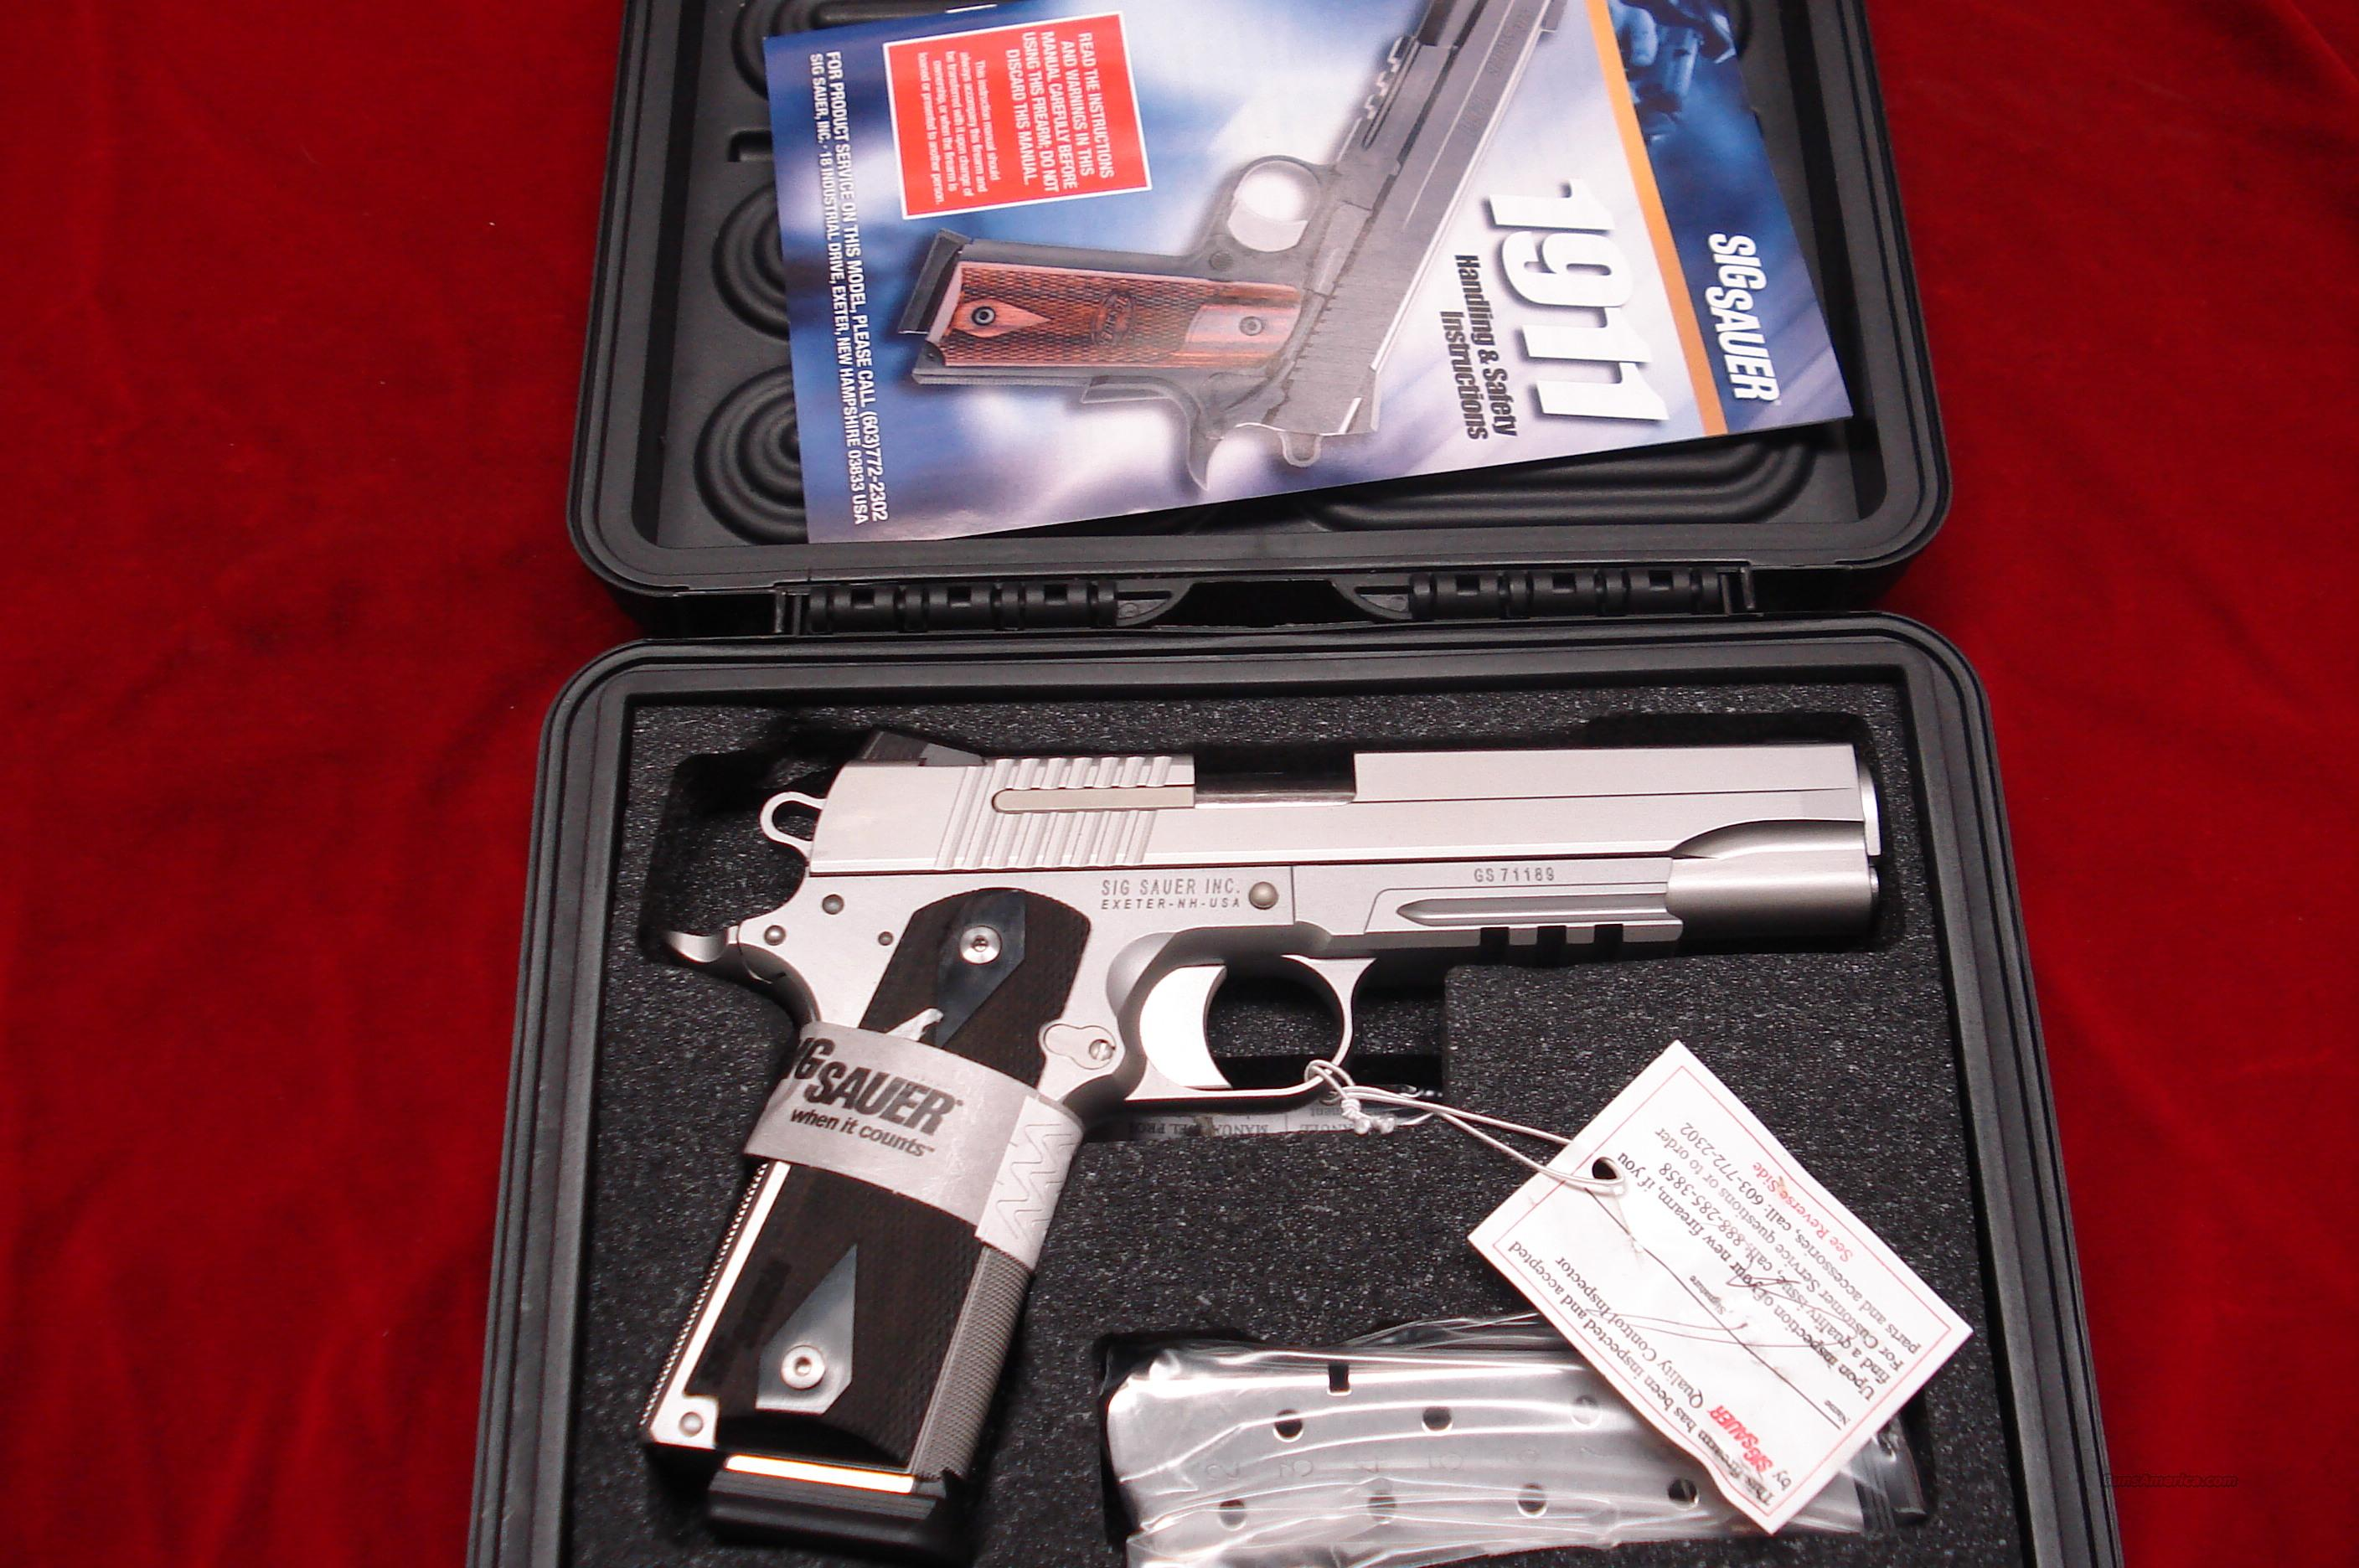 SIG SAUER STAINLESS 1911 WITH TAC RAIL AND NIGHT SIGHTS NEW   Guns > Pistols > Sig - Sauer/Sigarms Pistols > 1911